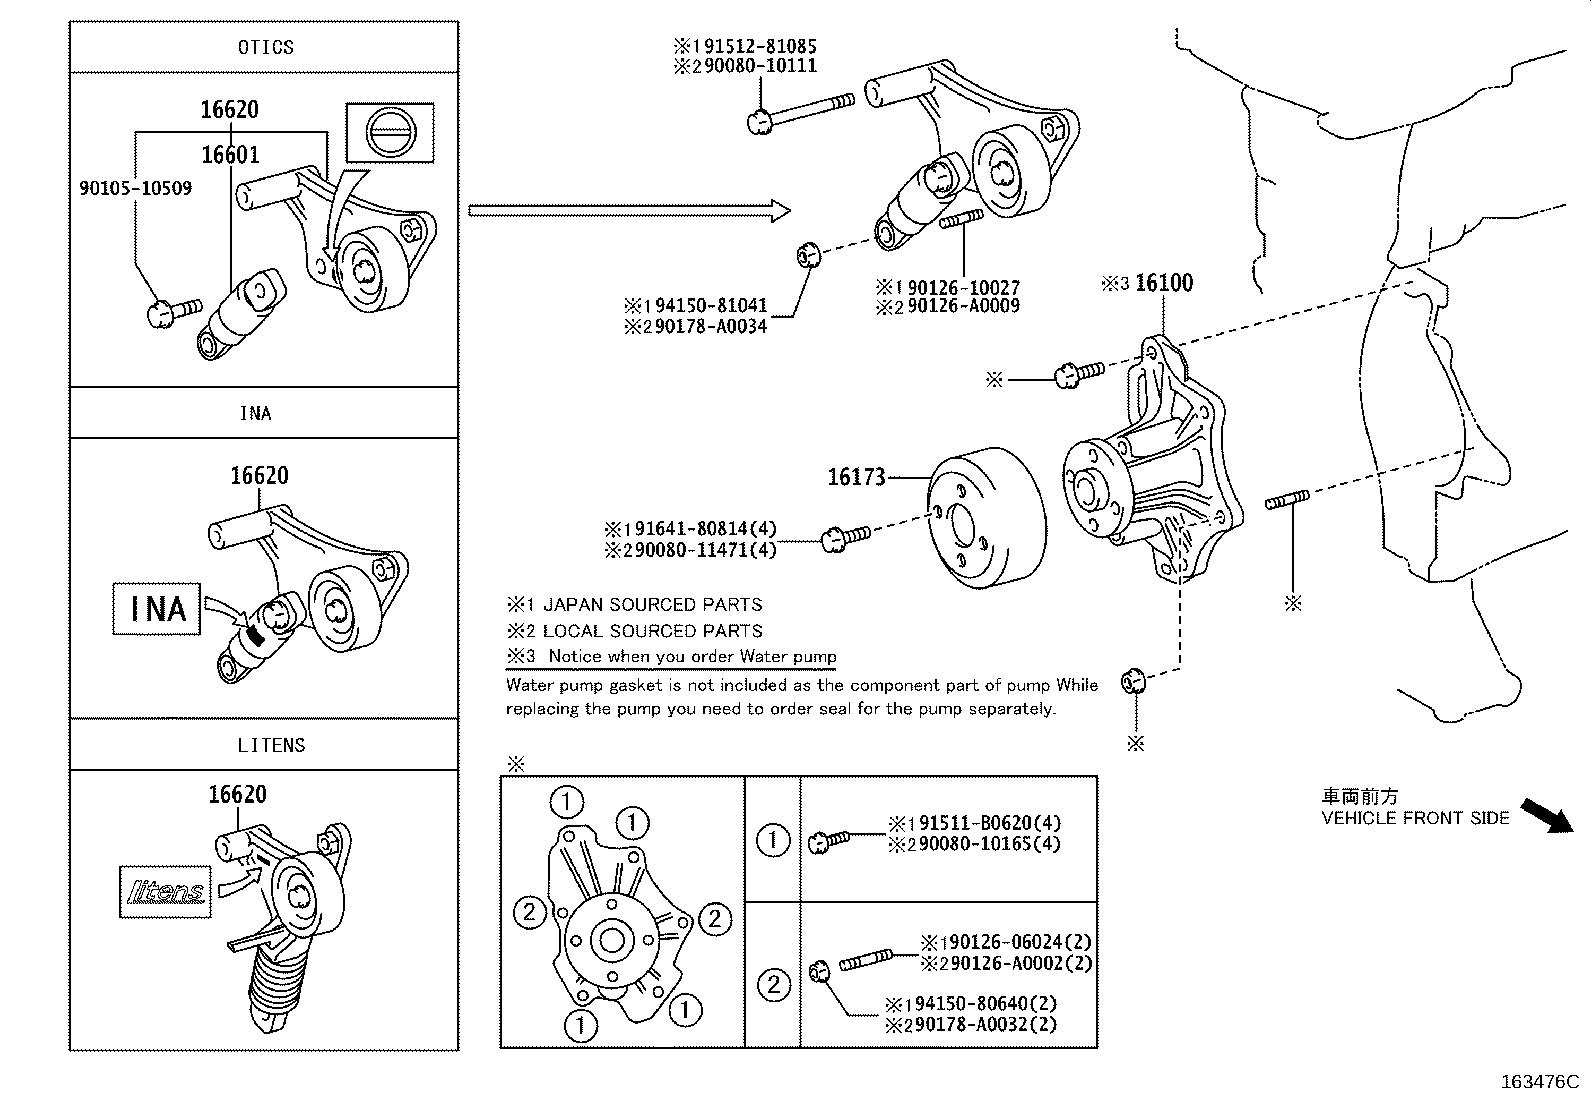 Toyota Corolla Tensioner assembly, v-ribbed belt. Otics